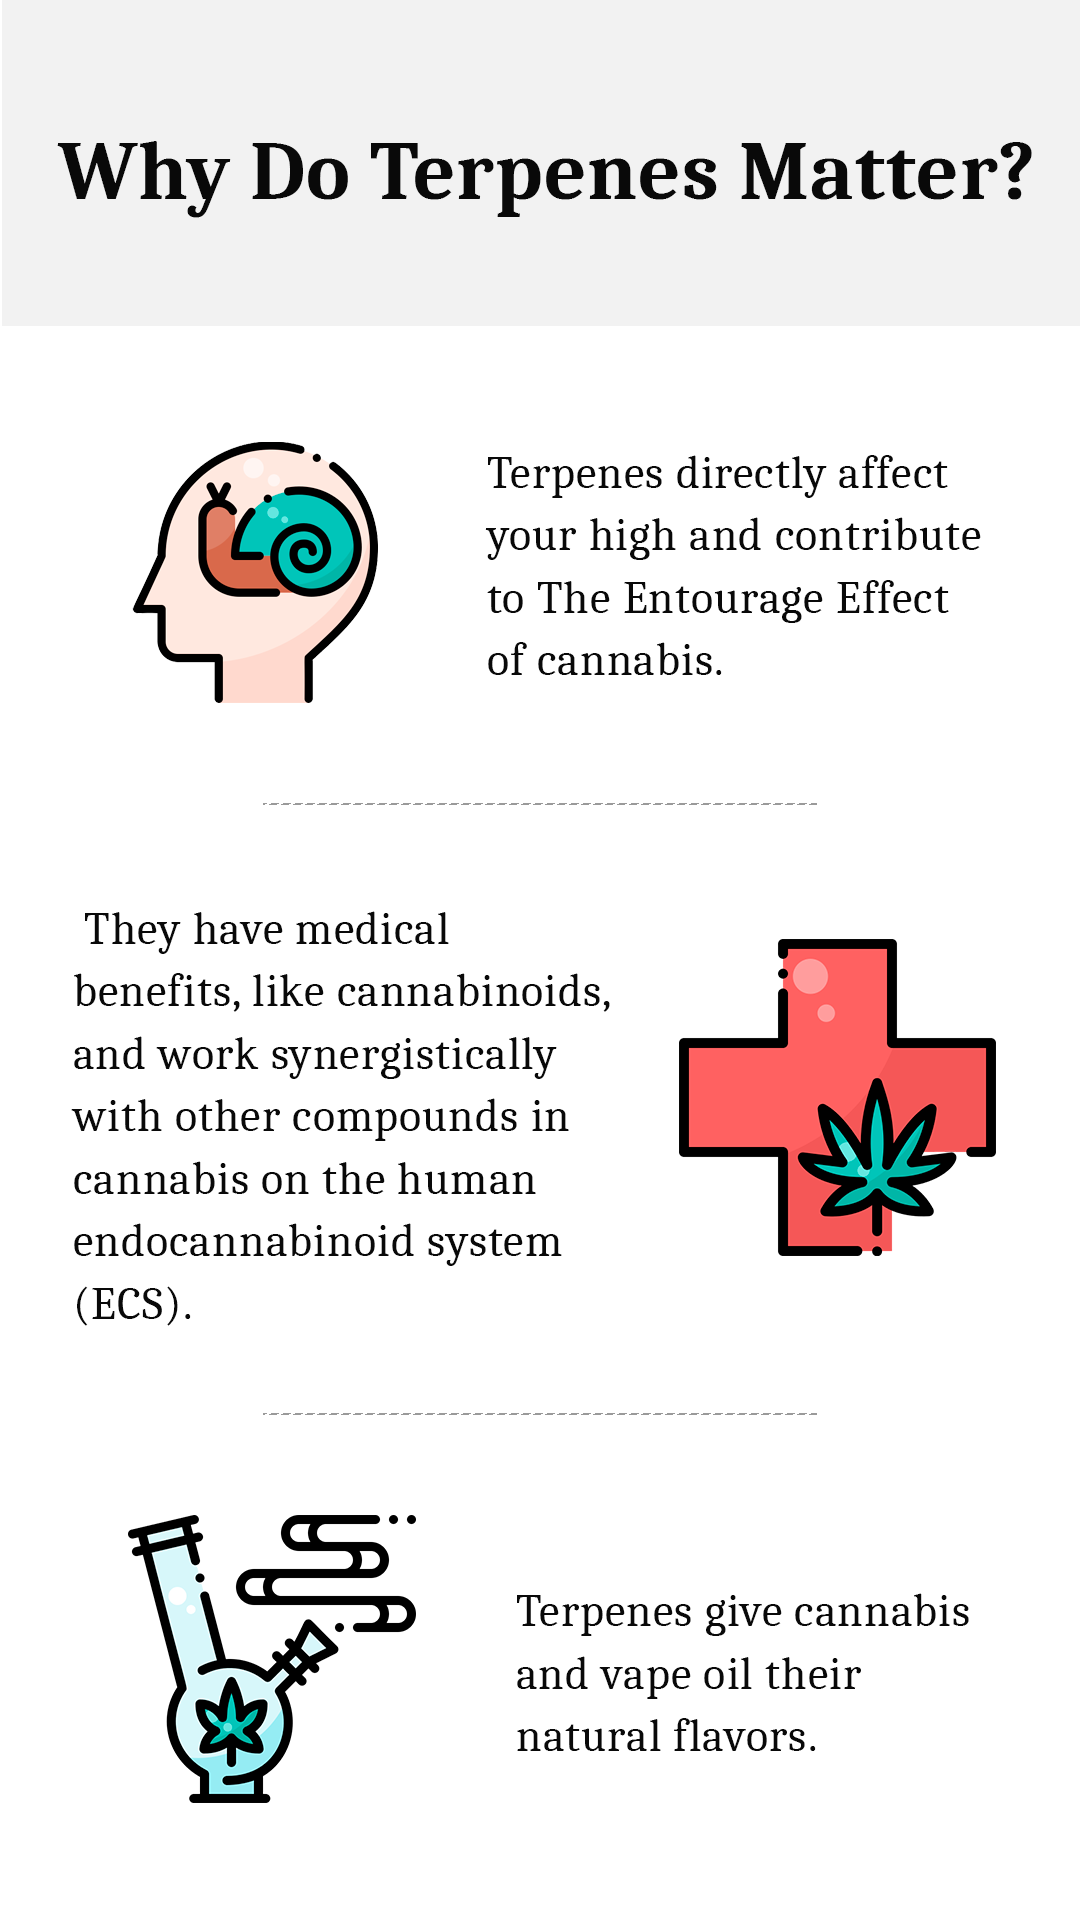 Why do terpenes matter